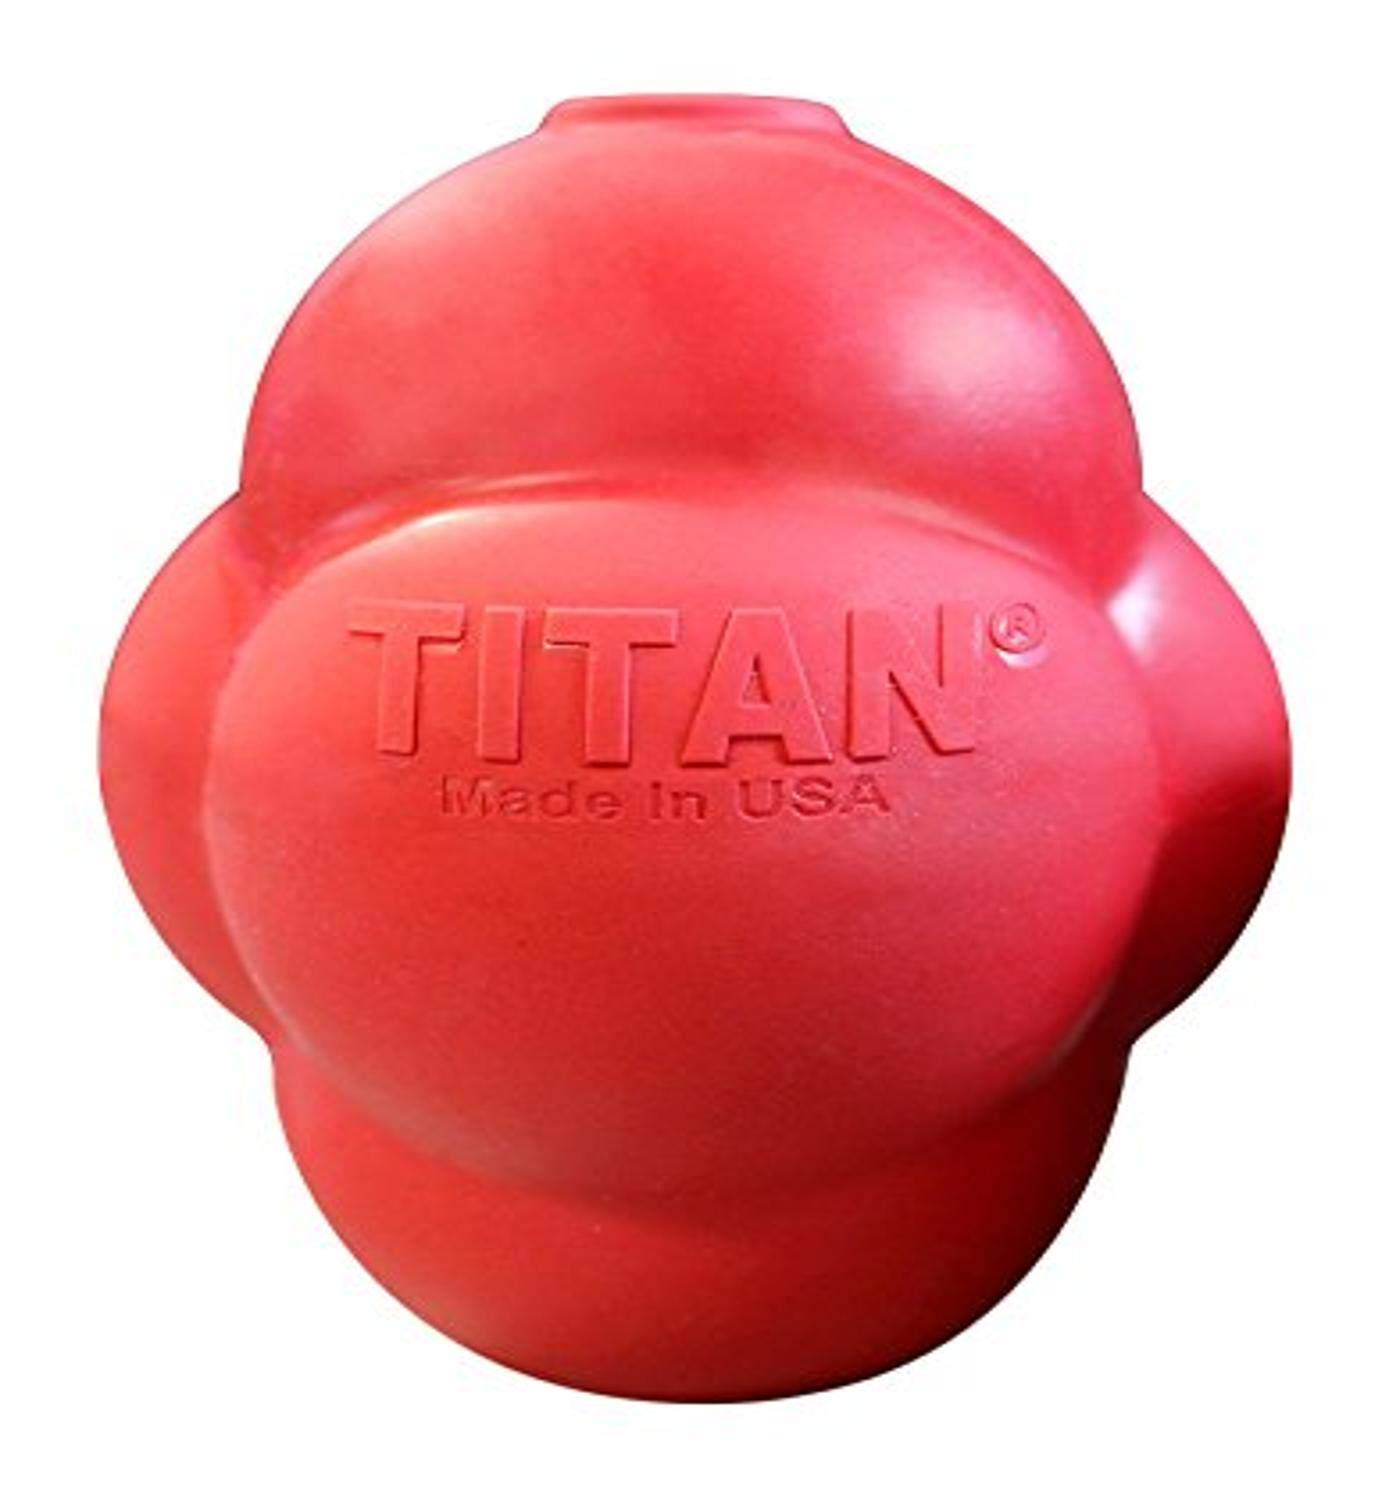 Titan Busy Bounce, Tough Durable Treat Dispensing Dog Toy With Unpredictable Bounce | Made in USA